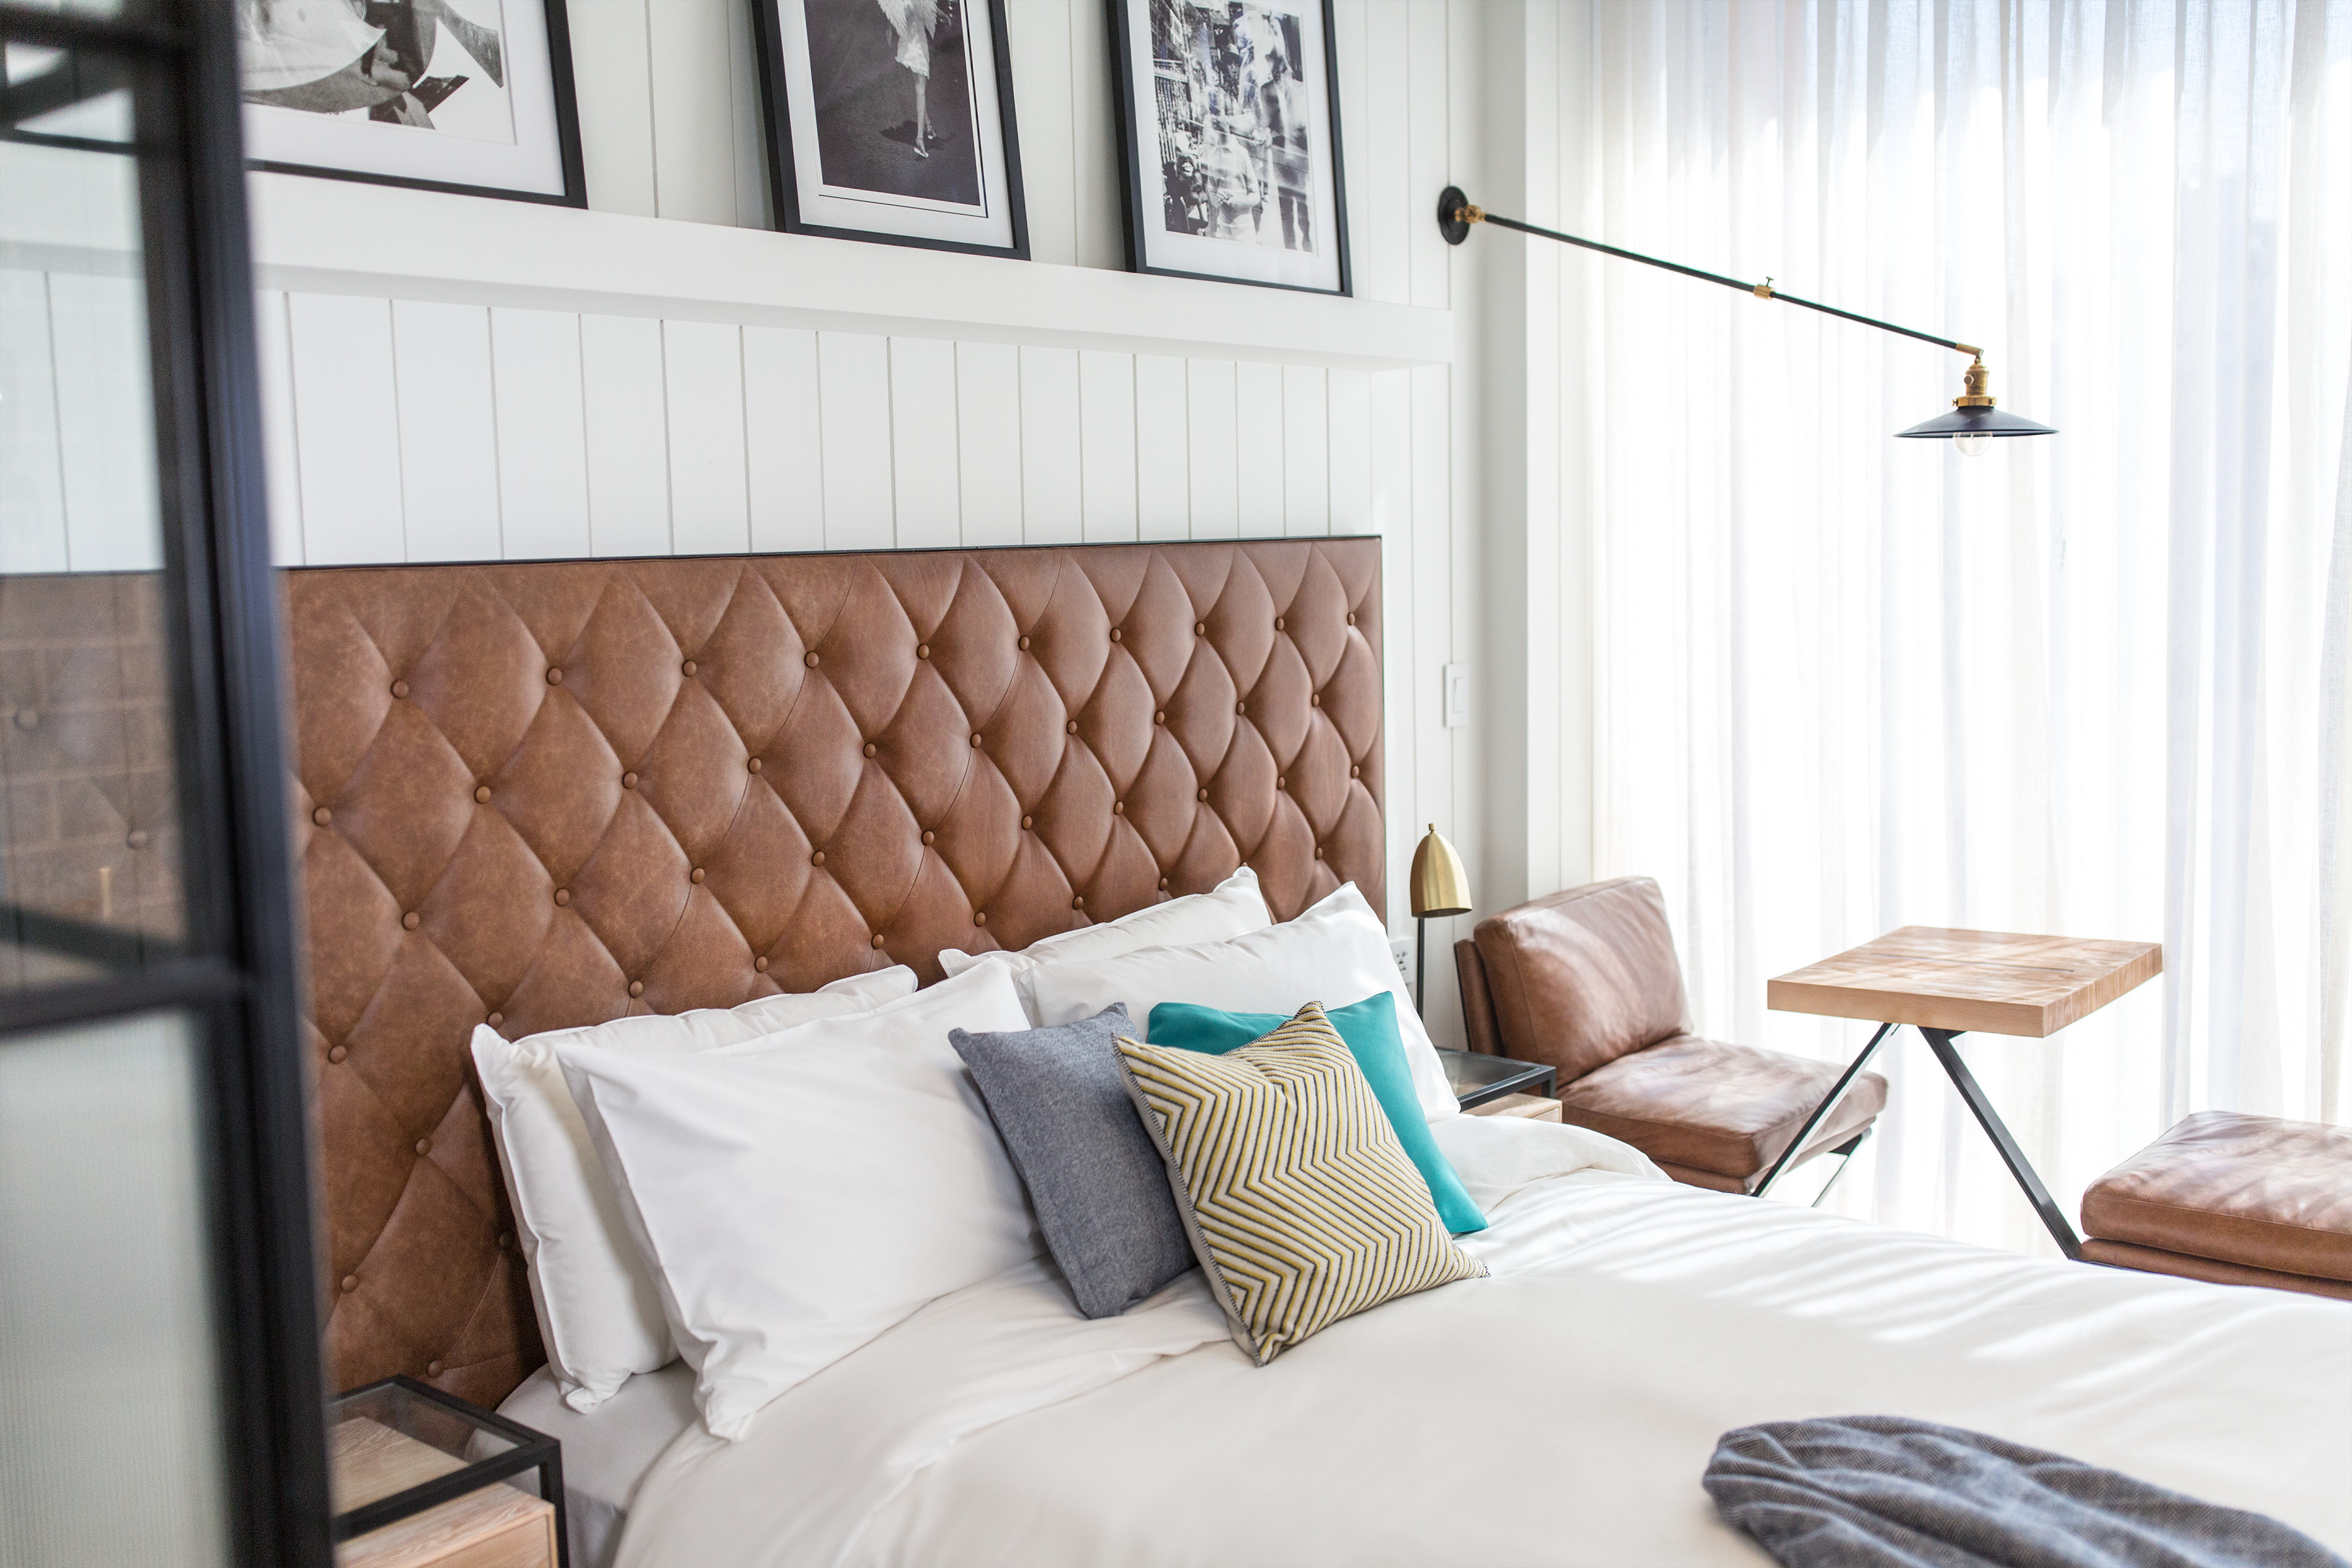 The Opening Of Williamsburg Hotel Follows Close On Heels Another Flashy In Neighborhood William Vale Which Welcomed Its